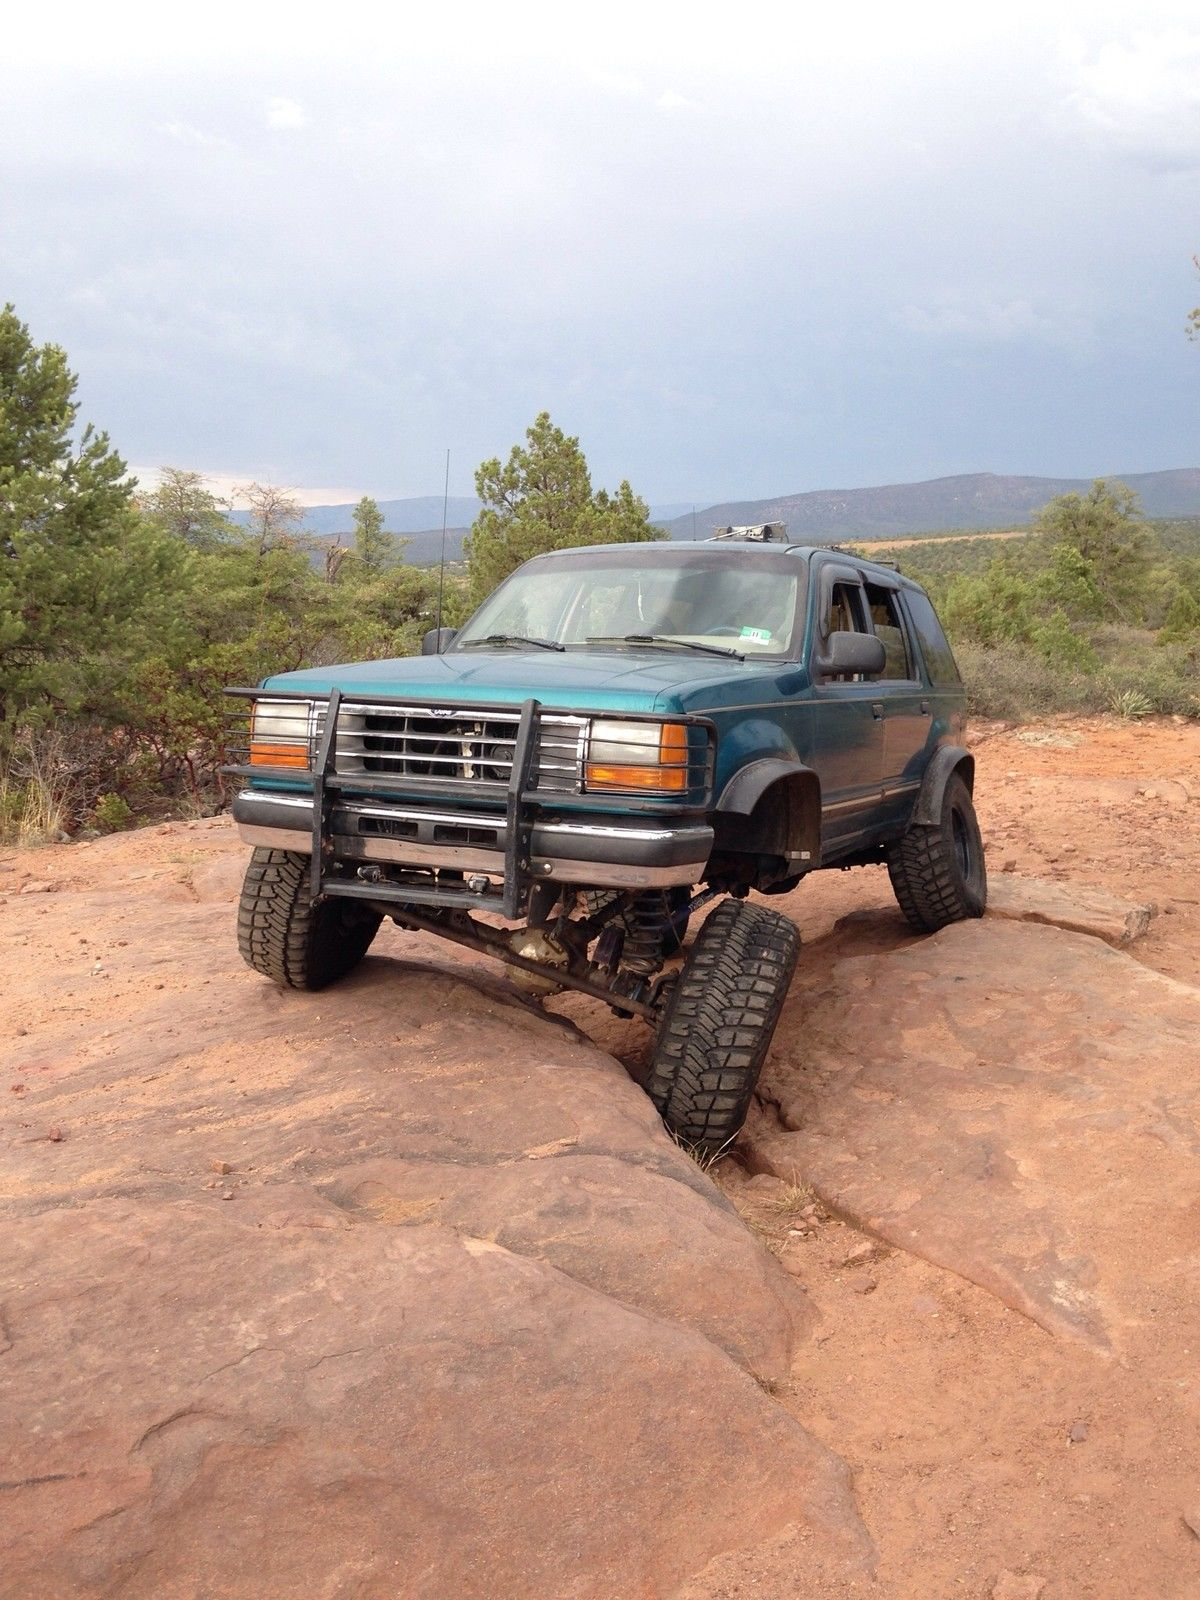 Custom lifted 94 ford explorer off road truck